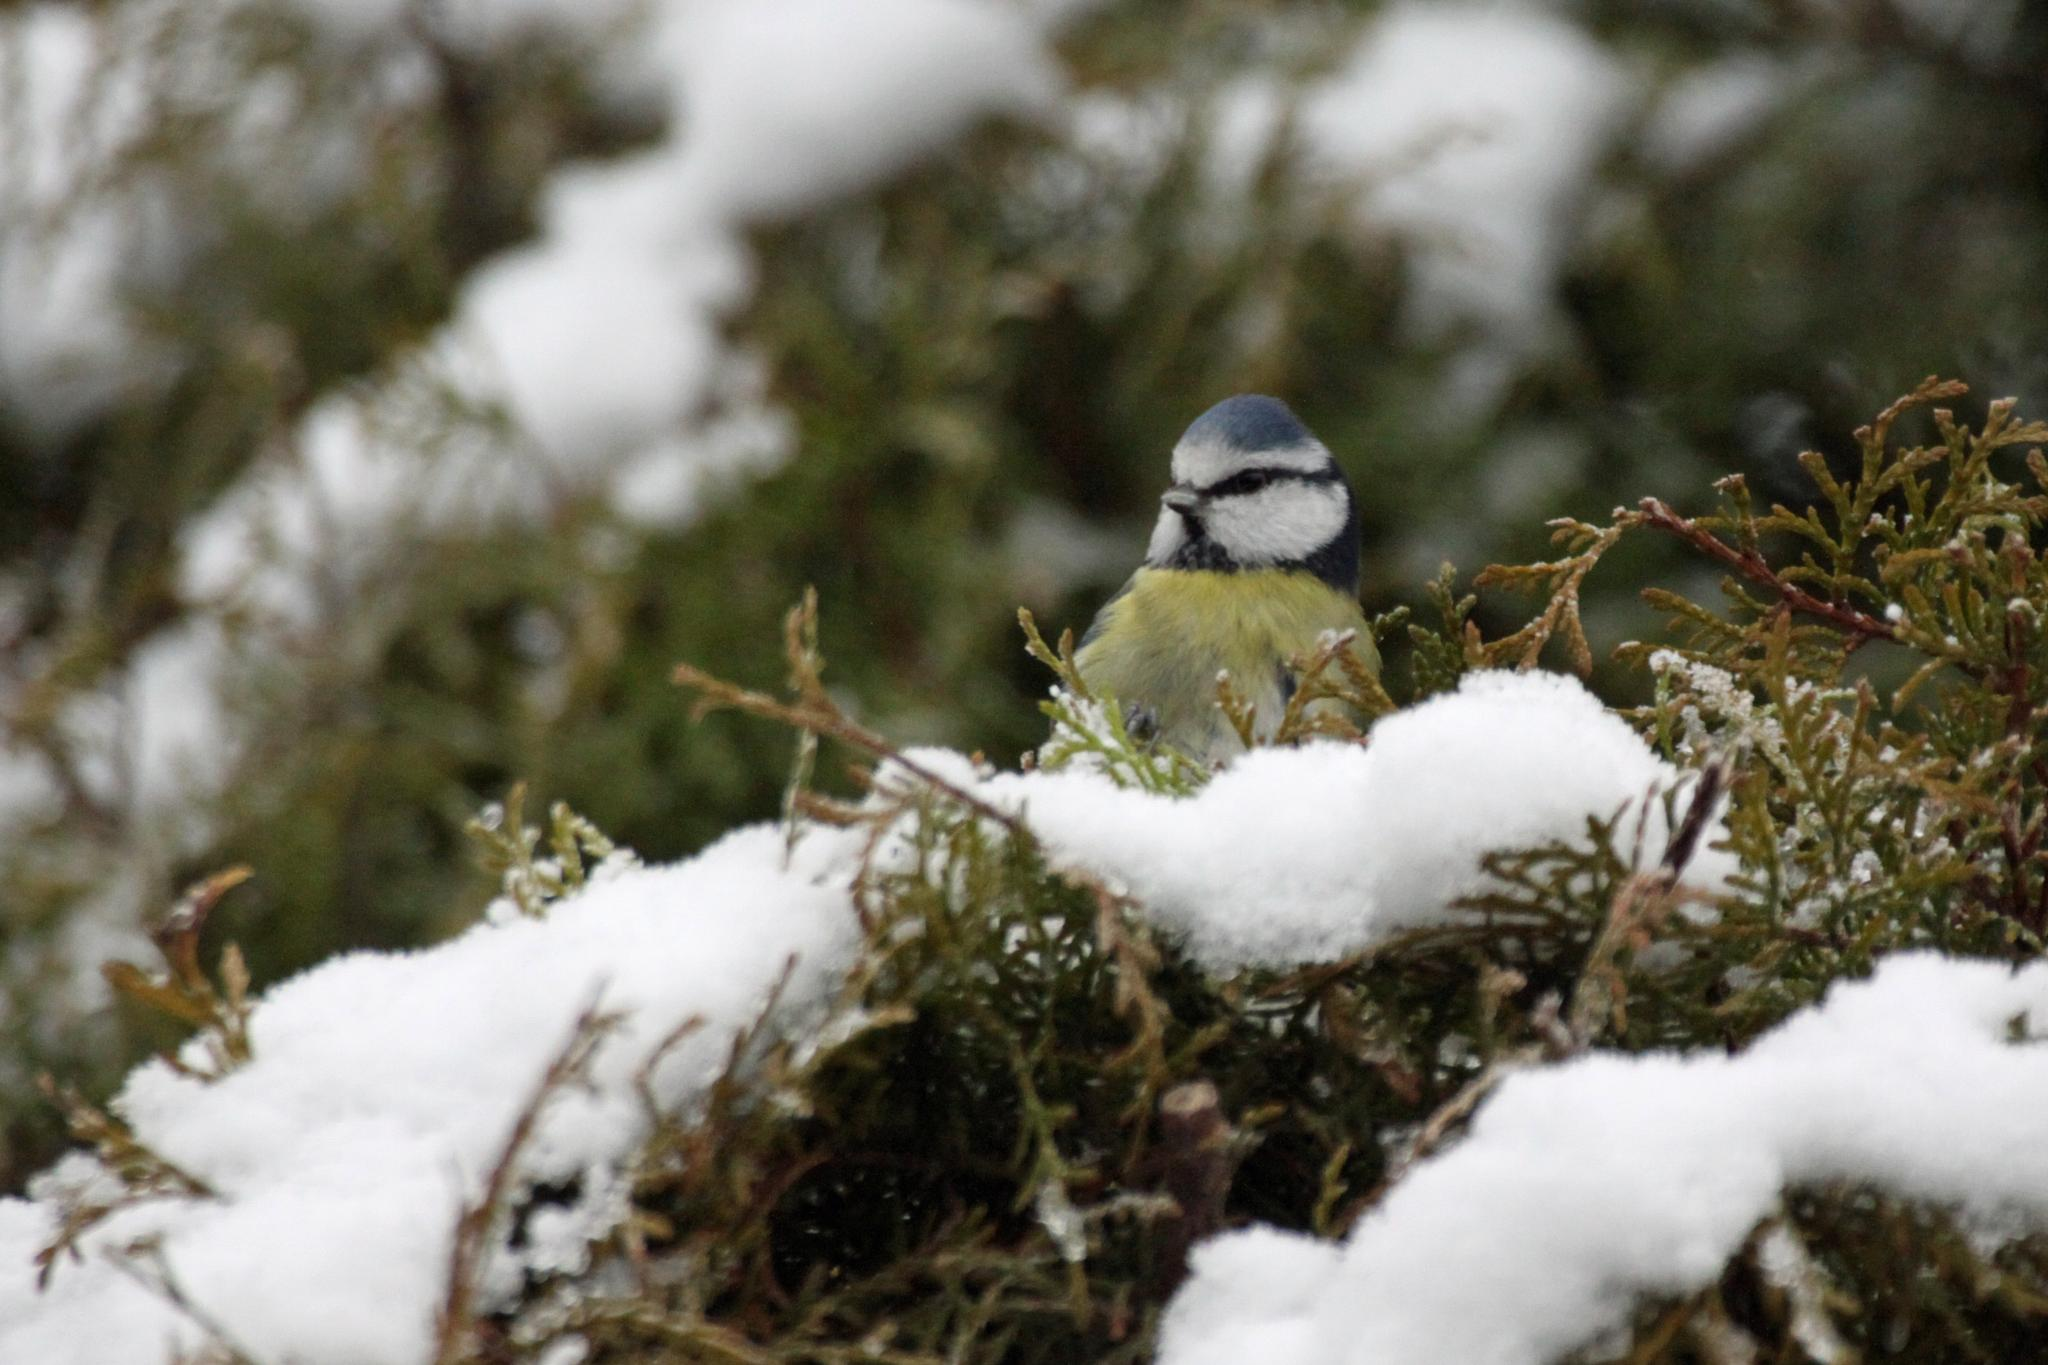 Blue Tit inthe Snow by Gerry Beever